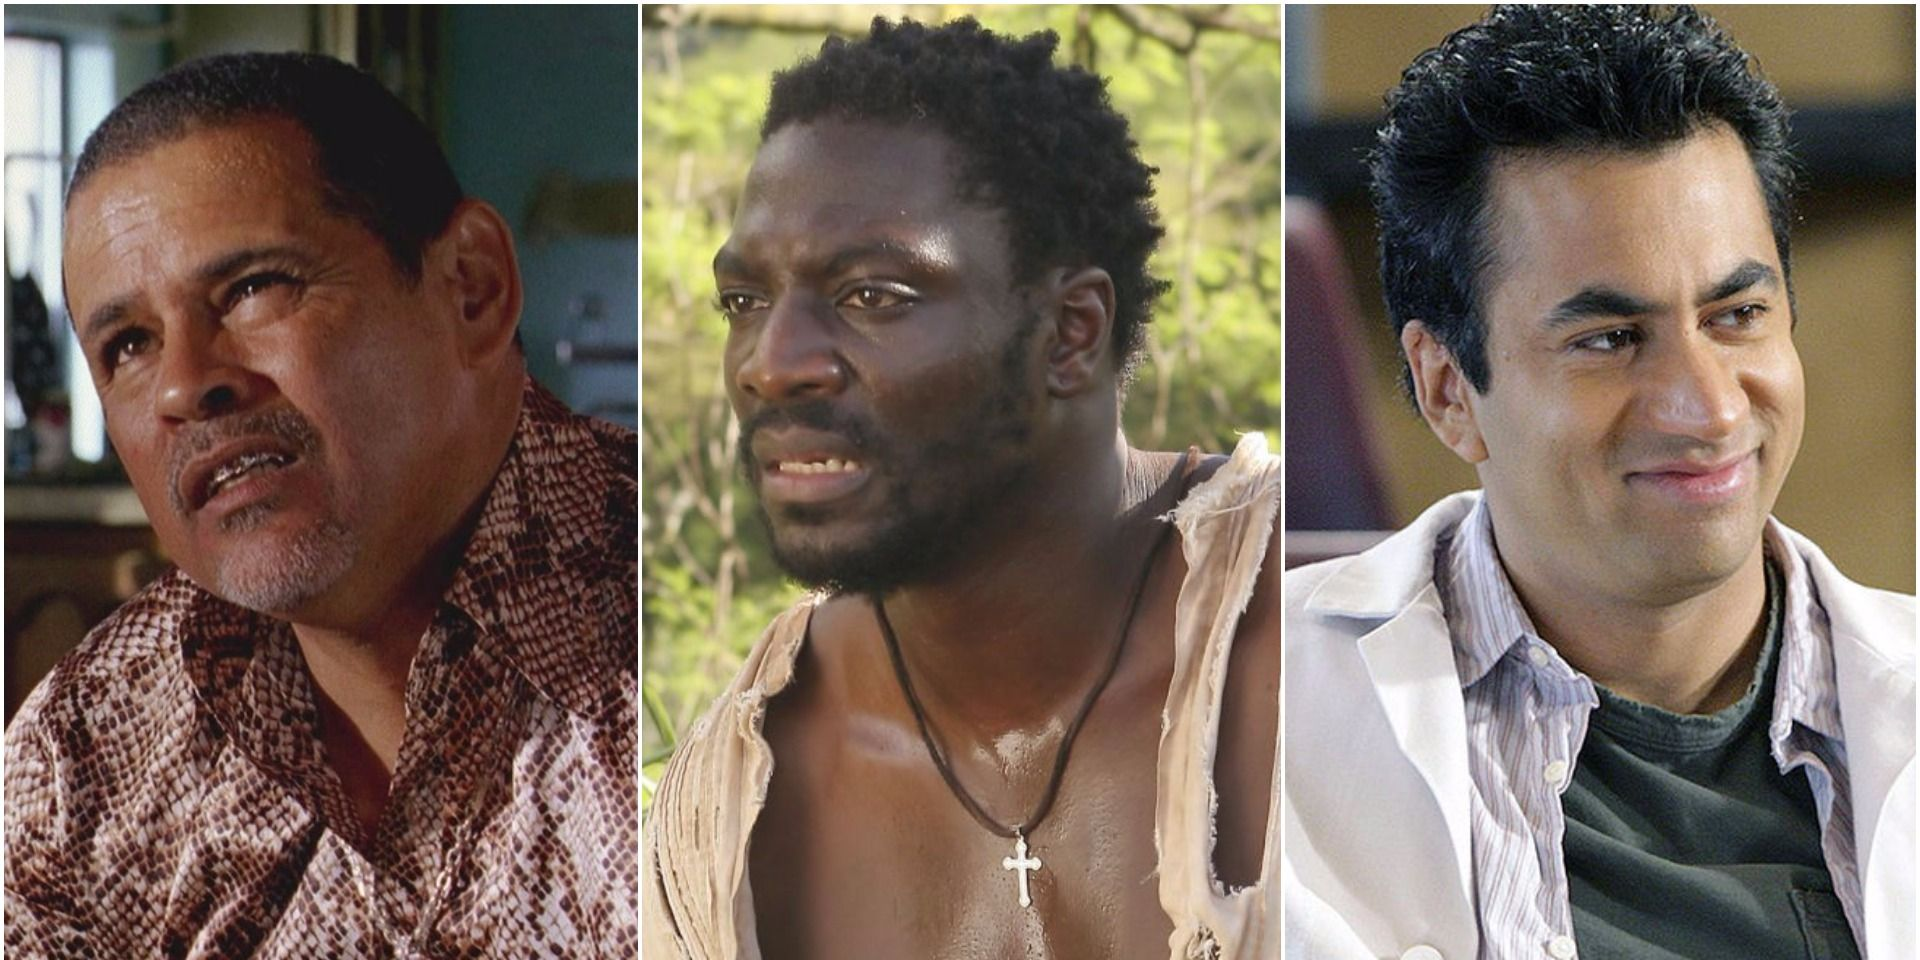 TV characters killed off at short notice